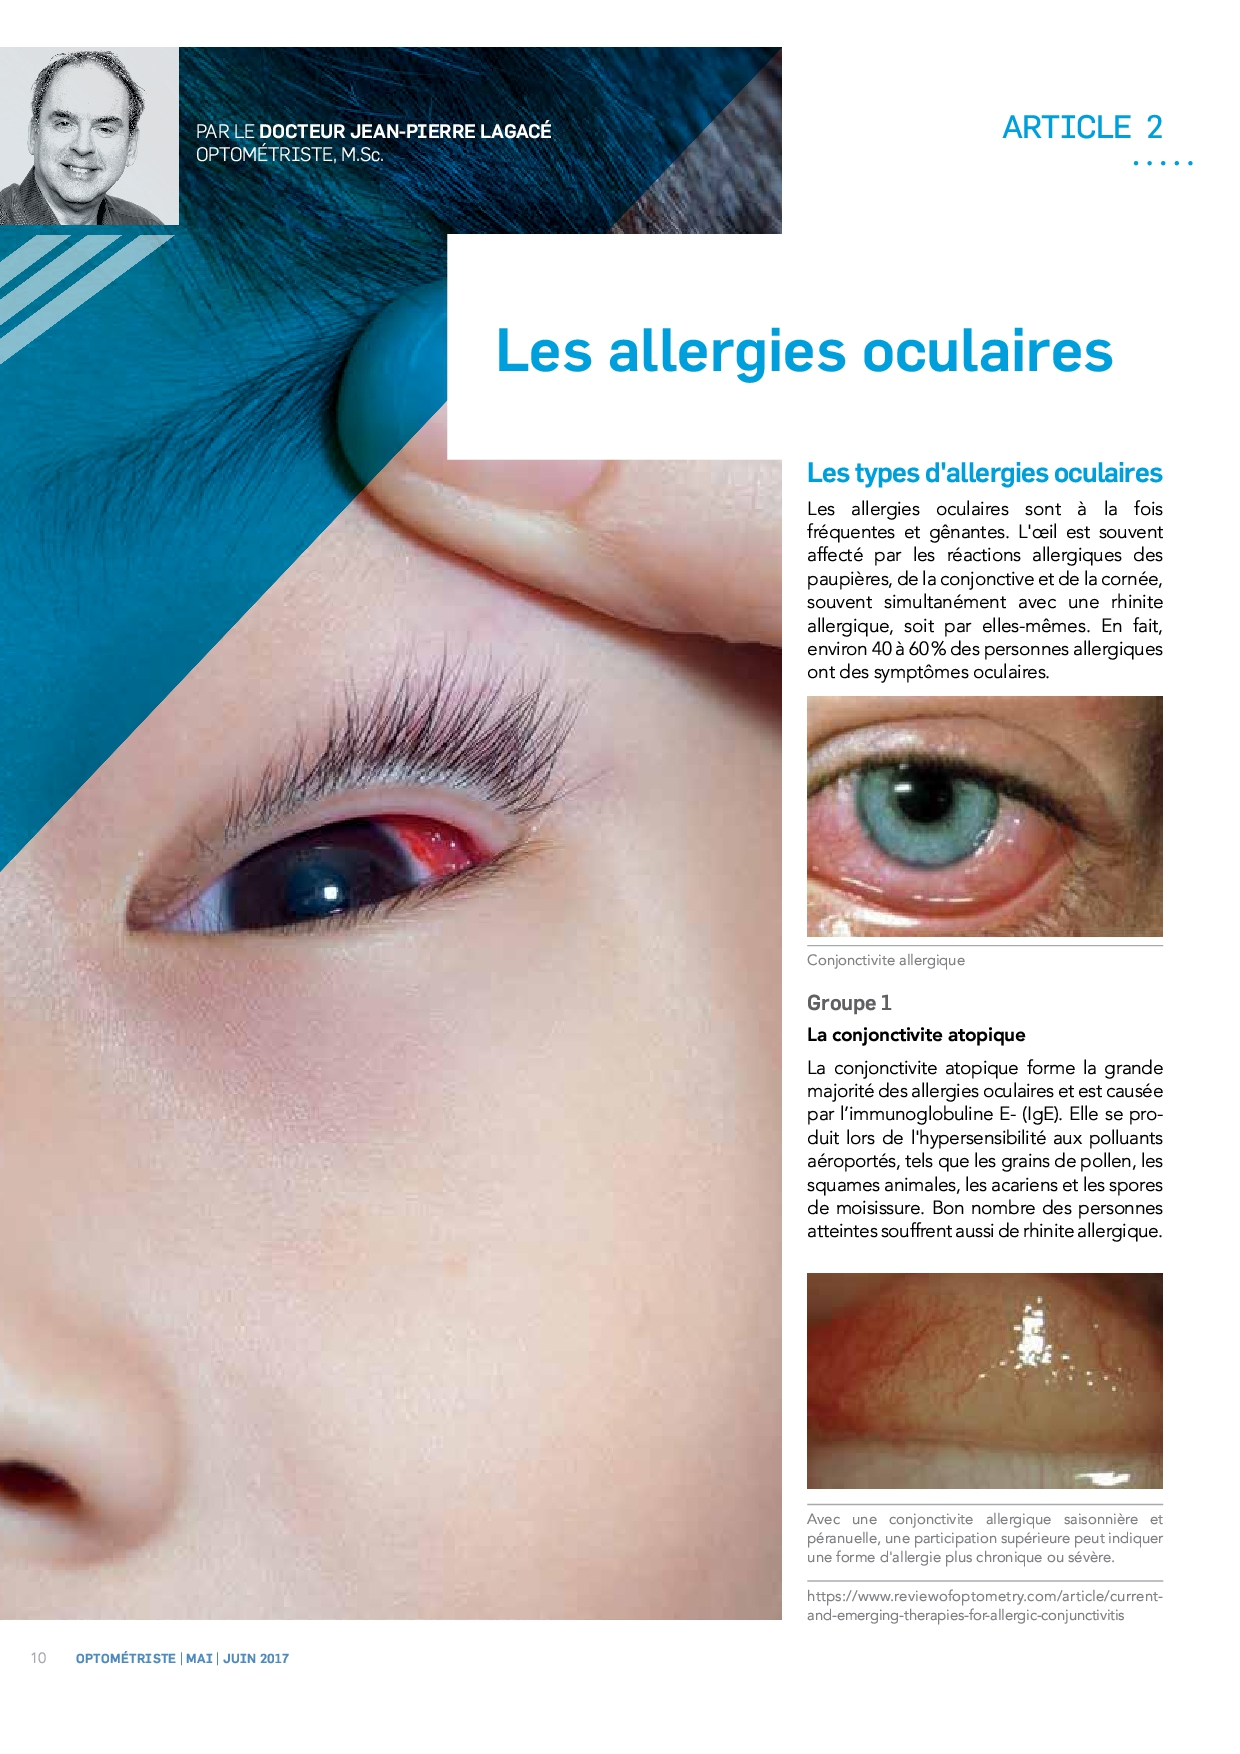 Allergies oculaires art2MaiJuin2017